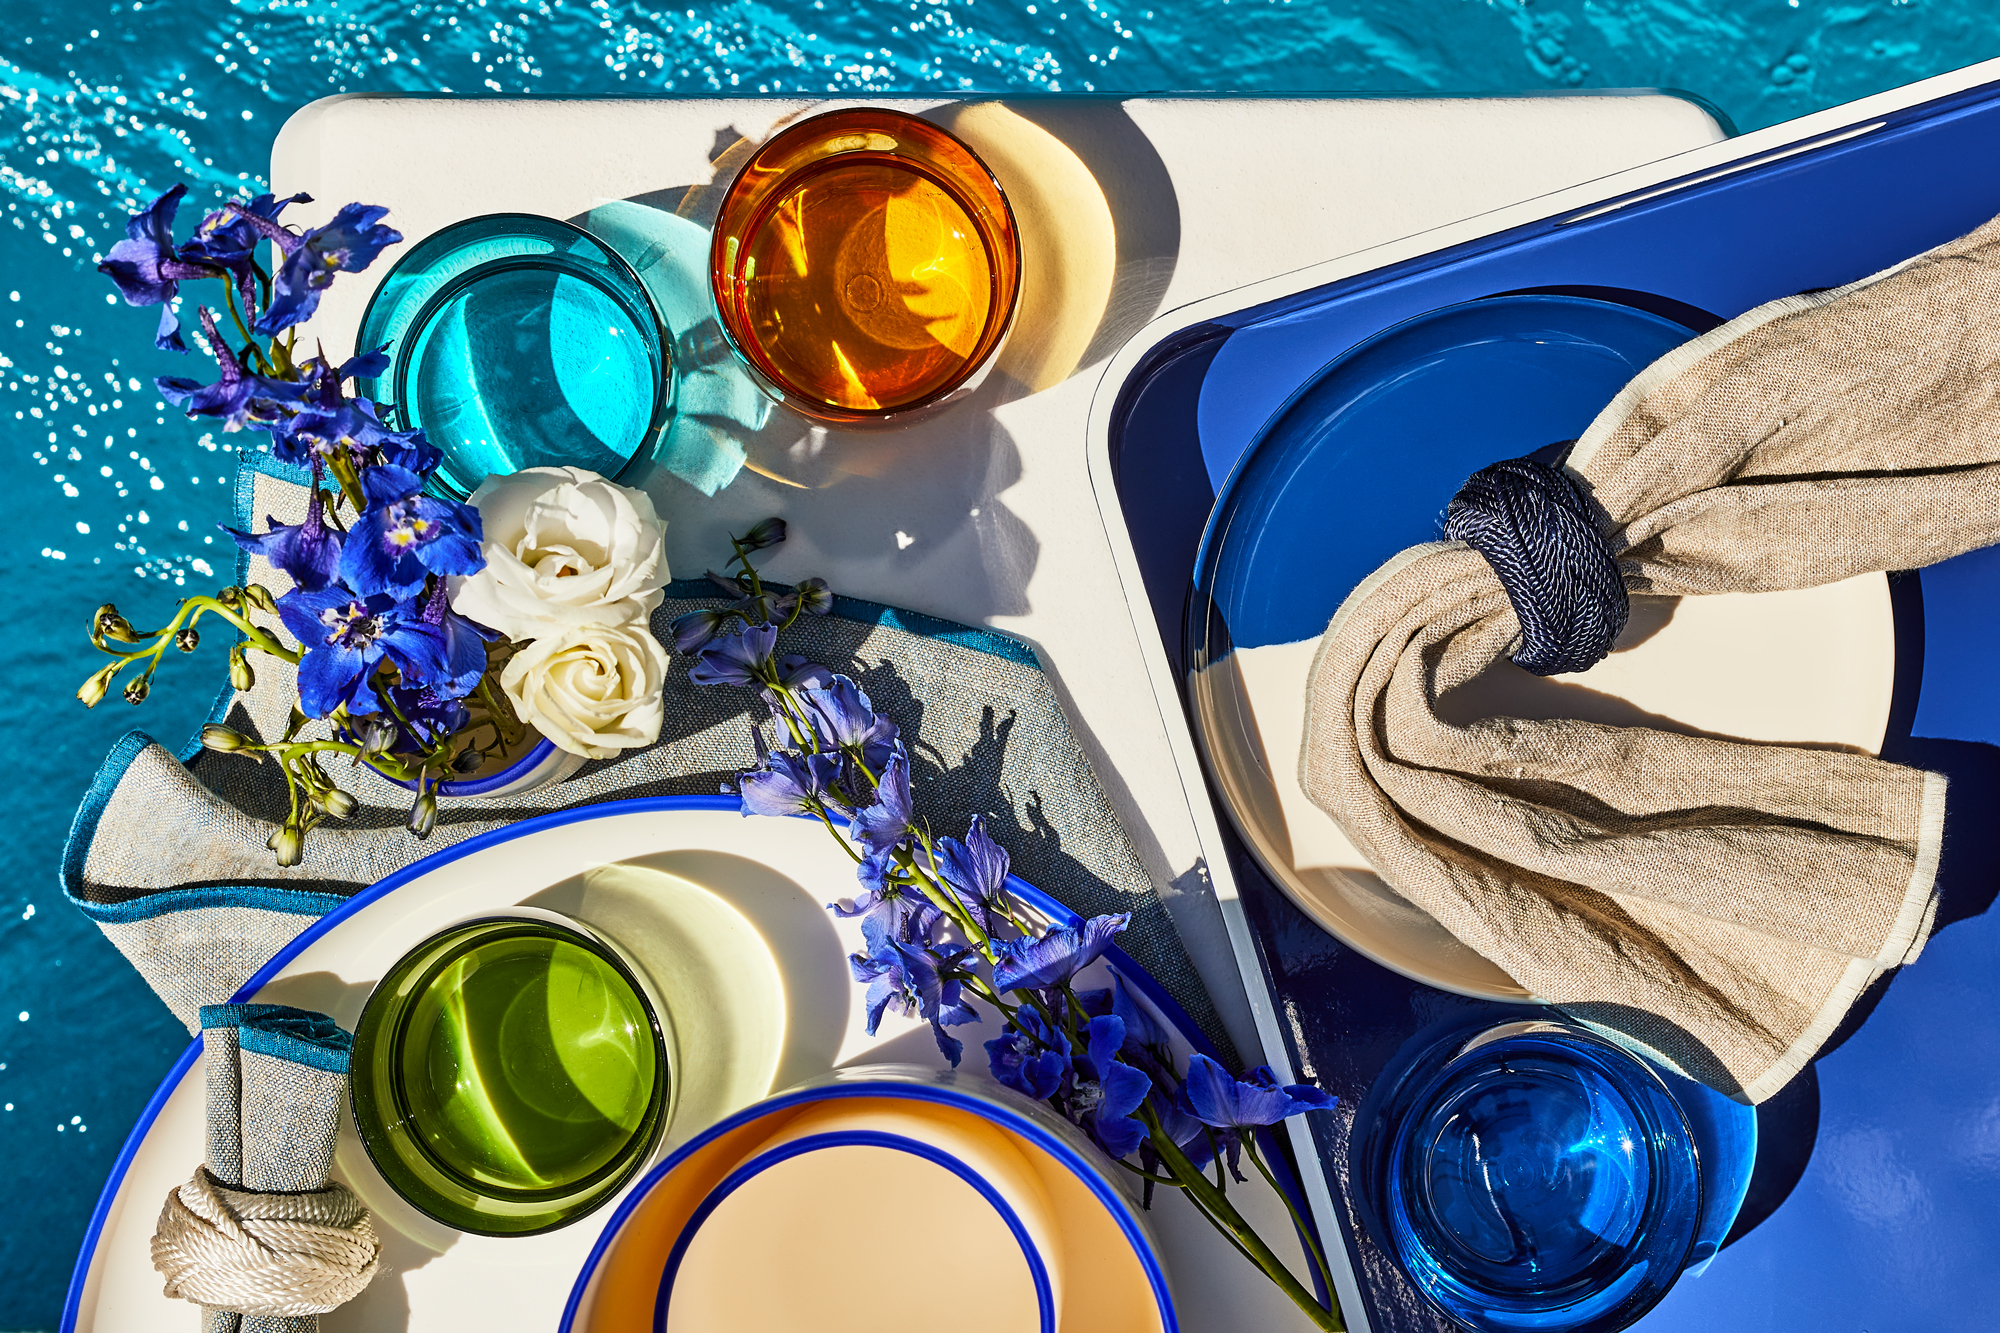 Best Outdoor Dinnerware